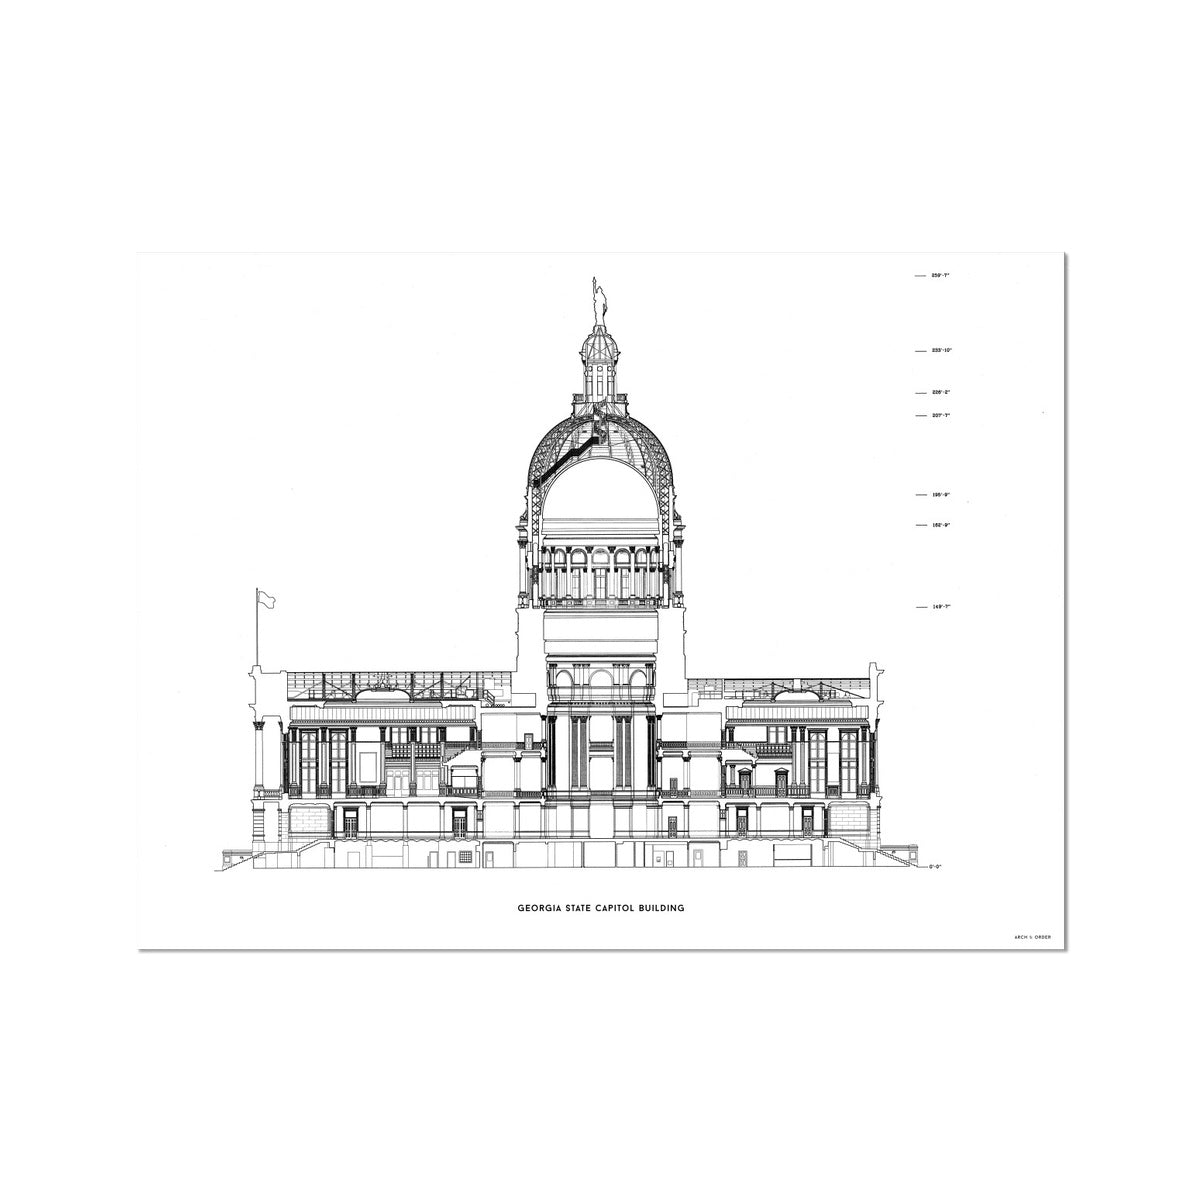 The Georgia State Capitol Building - North Elevation Cross Section - White - German Etching Print